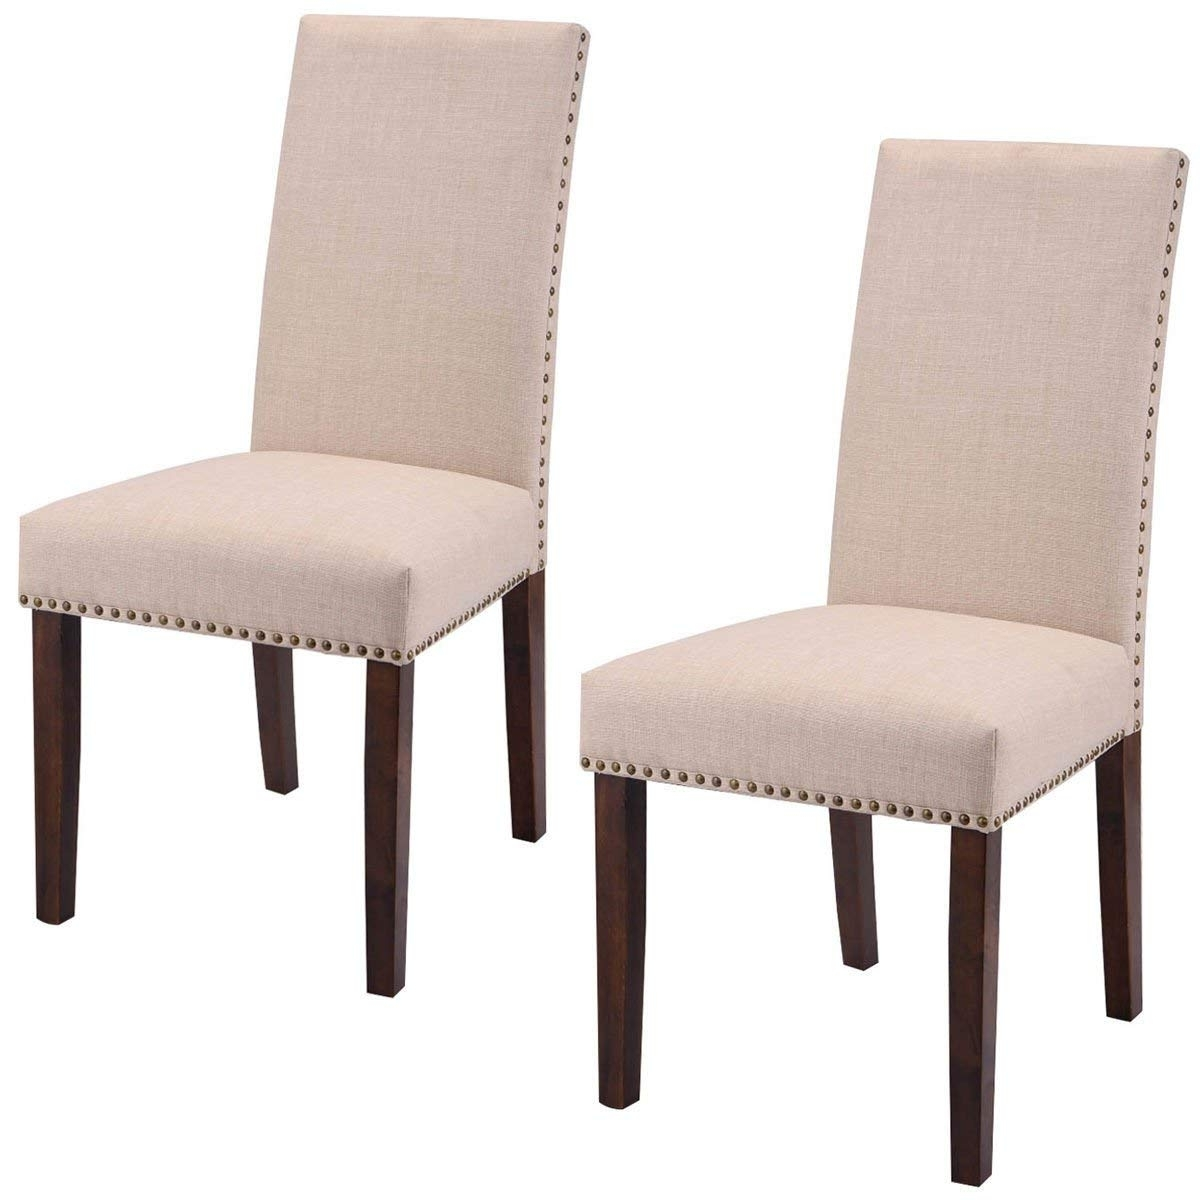 Well Liked Amazon – Giantex Set Of 2 Fabric Upholstered High Back Dining With Armless Oatmeal Dining Chairs (View 15 of 20)